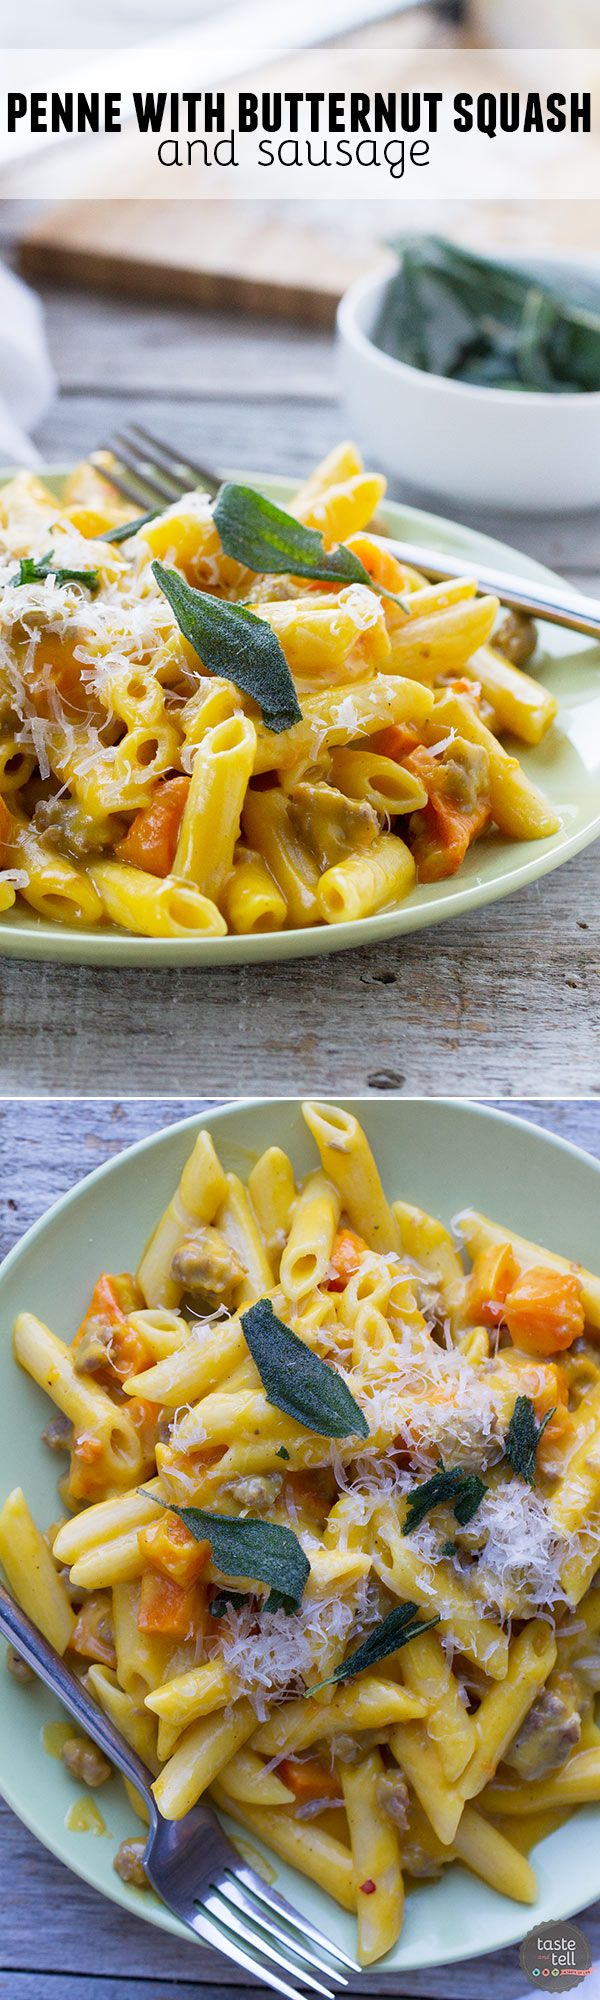 Nothing feels more comforting than this Penne with Butternut Squash and Sausage - with a double dose of butternut squash in both the pasta sauce and then topped with roasted squash.